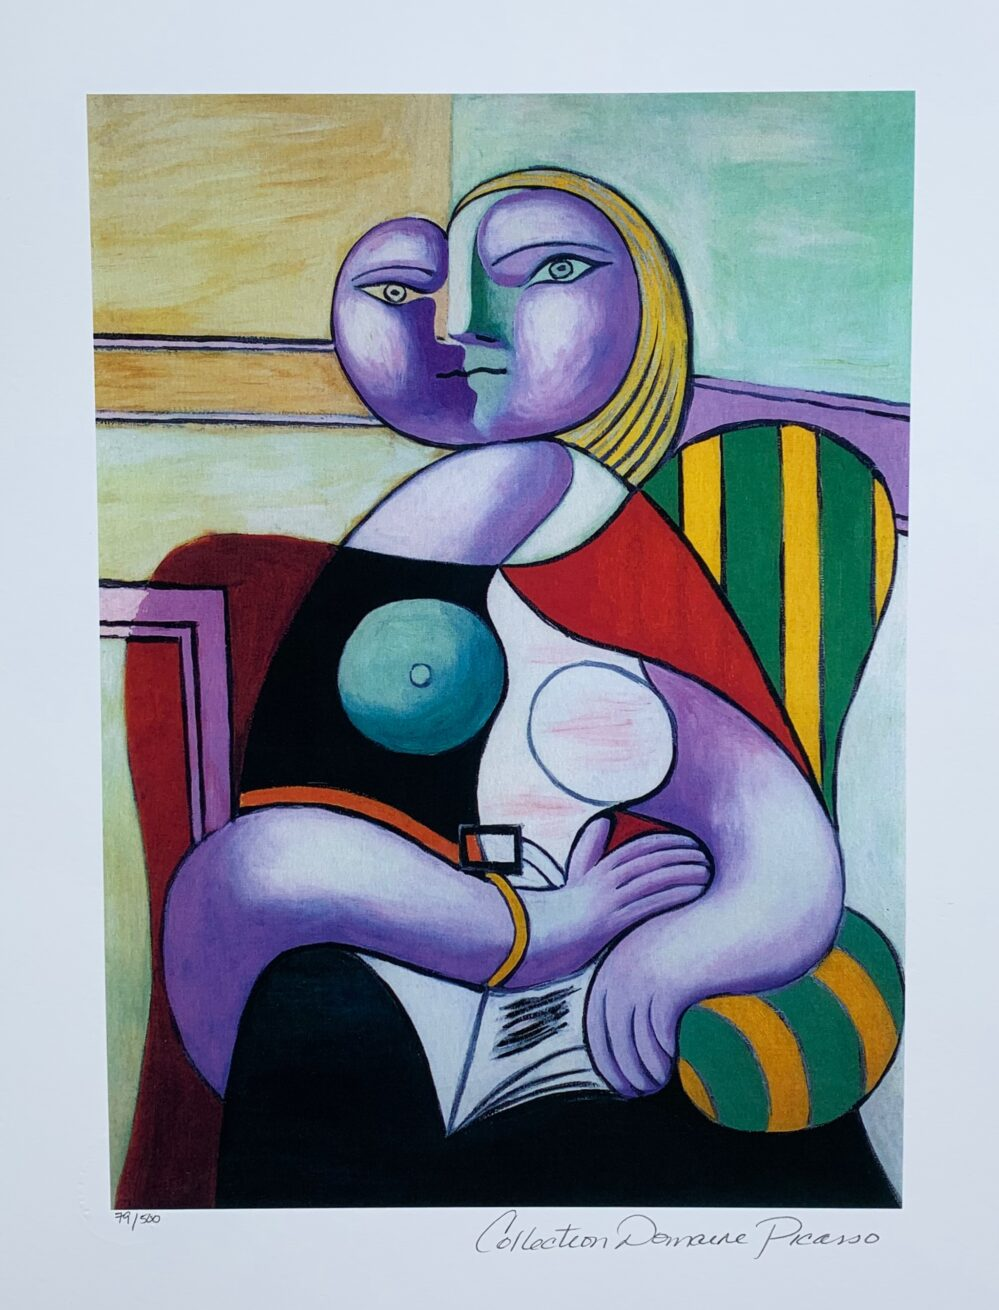 Pablo Picasso LADY IN STRIPED CHAIR Estate Signed Limited Edition Giclee Medium